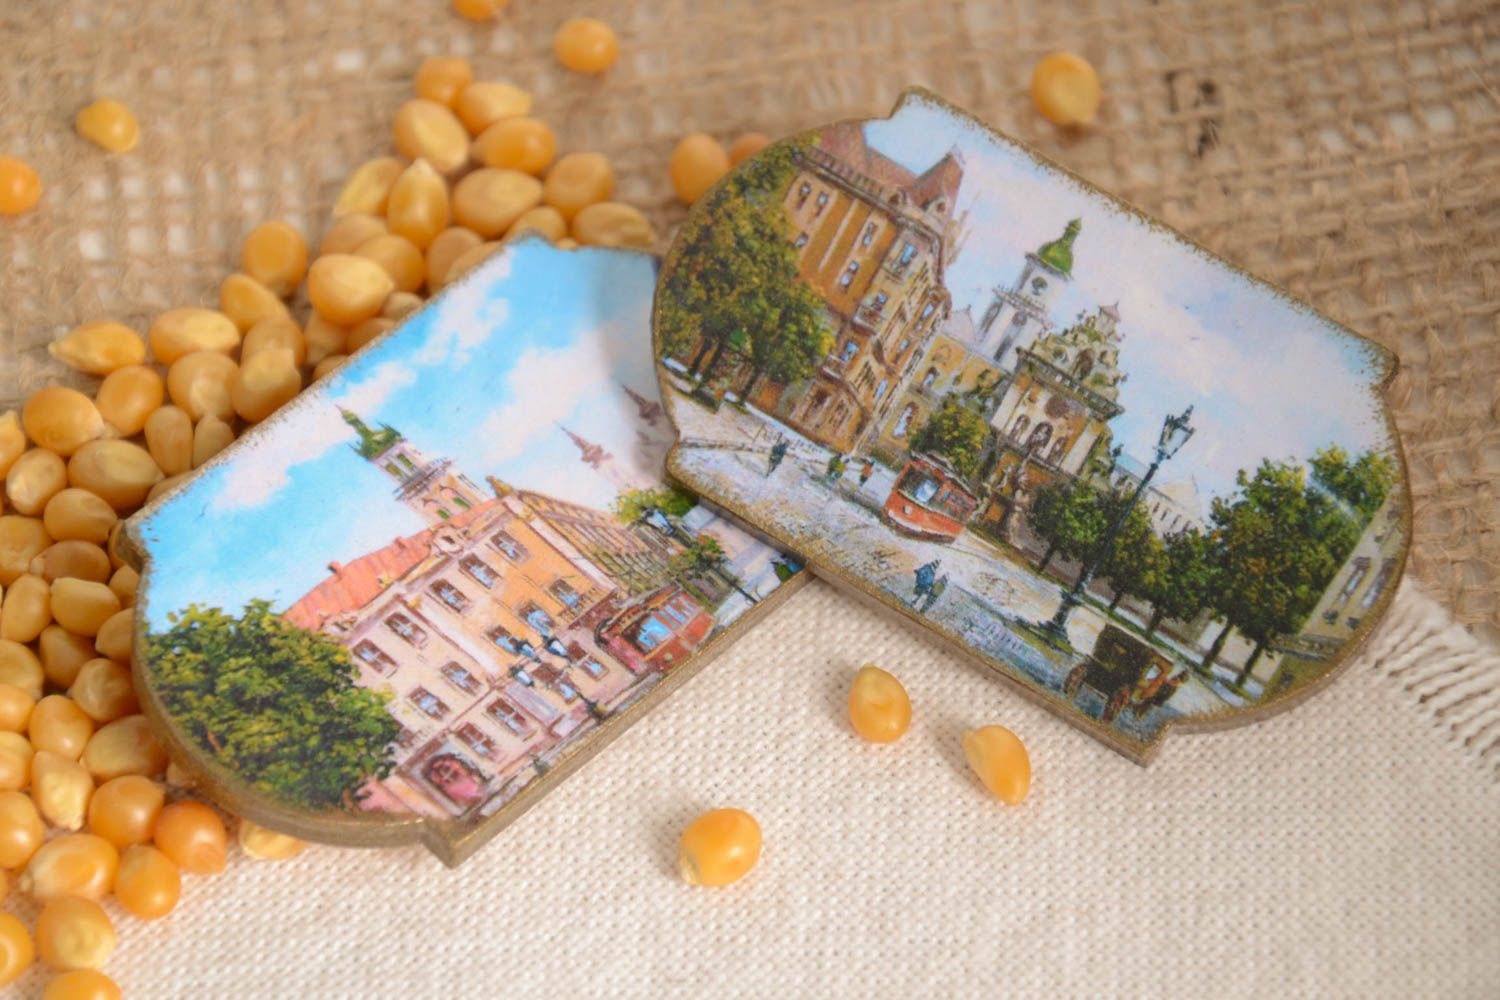 Handmade fridge magnet 2 pieces home decoration small gifts decorative use only photo 1